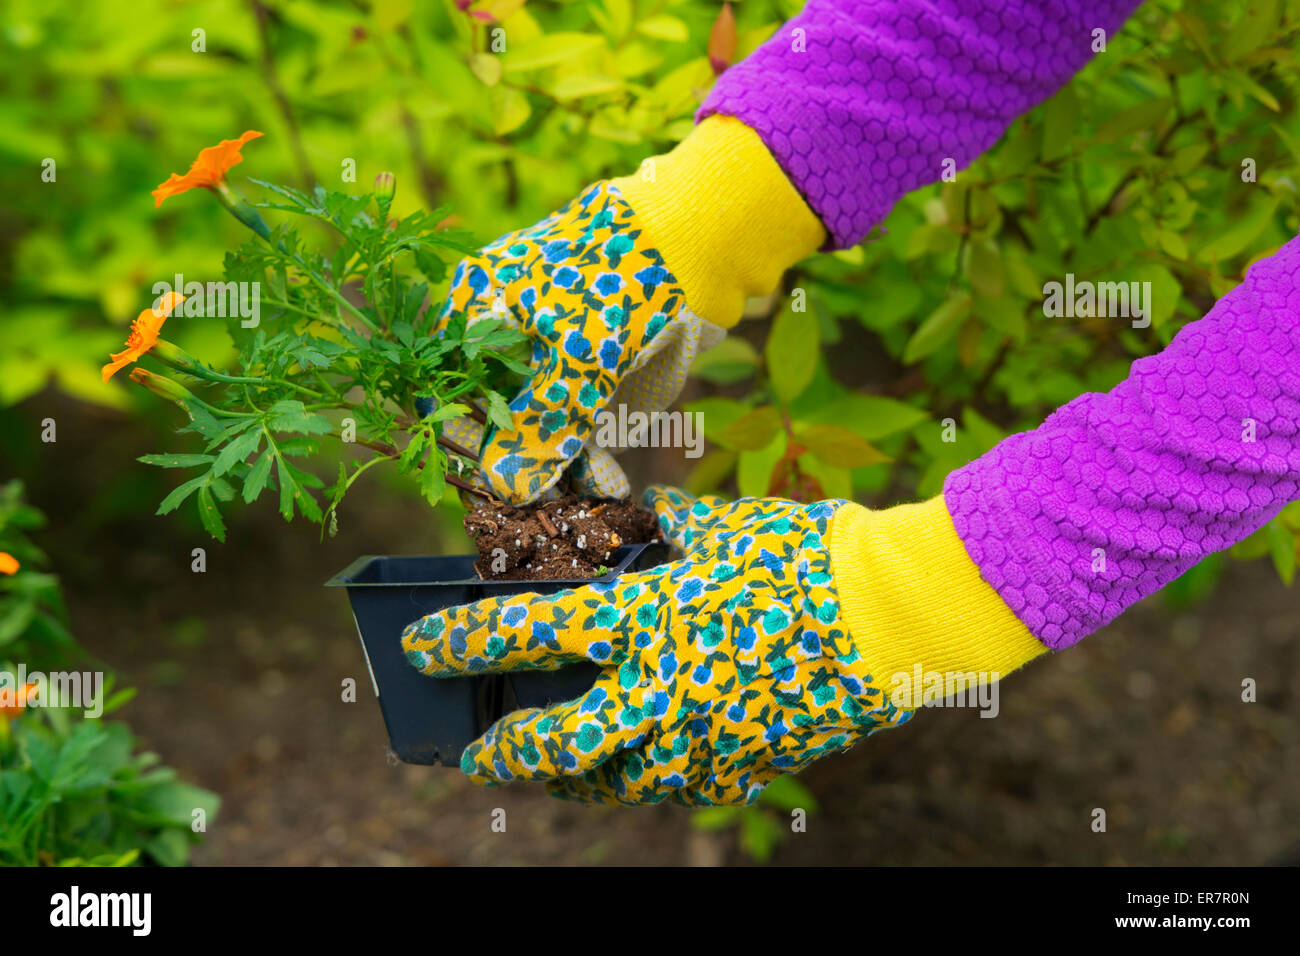 Gardening, Planting,  Flowers,  Woman holding flower plants to plant in garden, woman's hands in Gardening Gloves - Stock Image